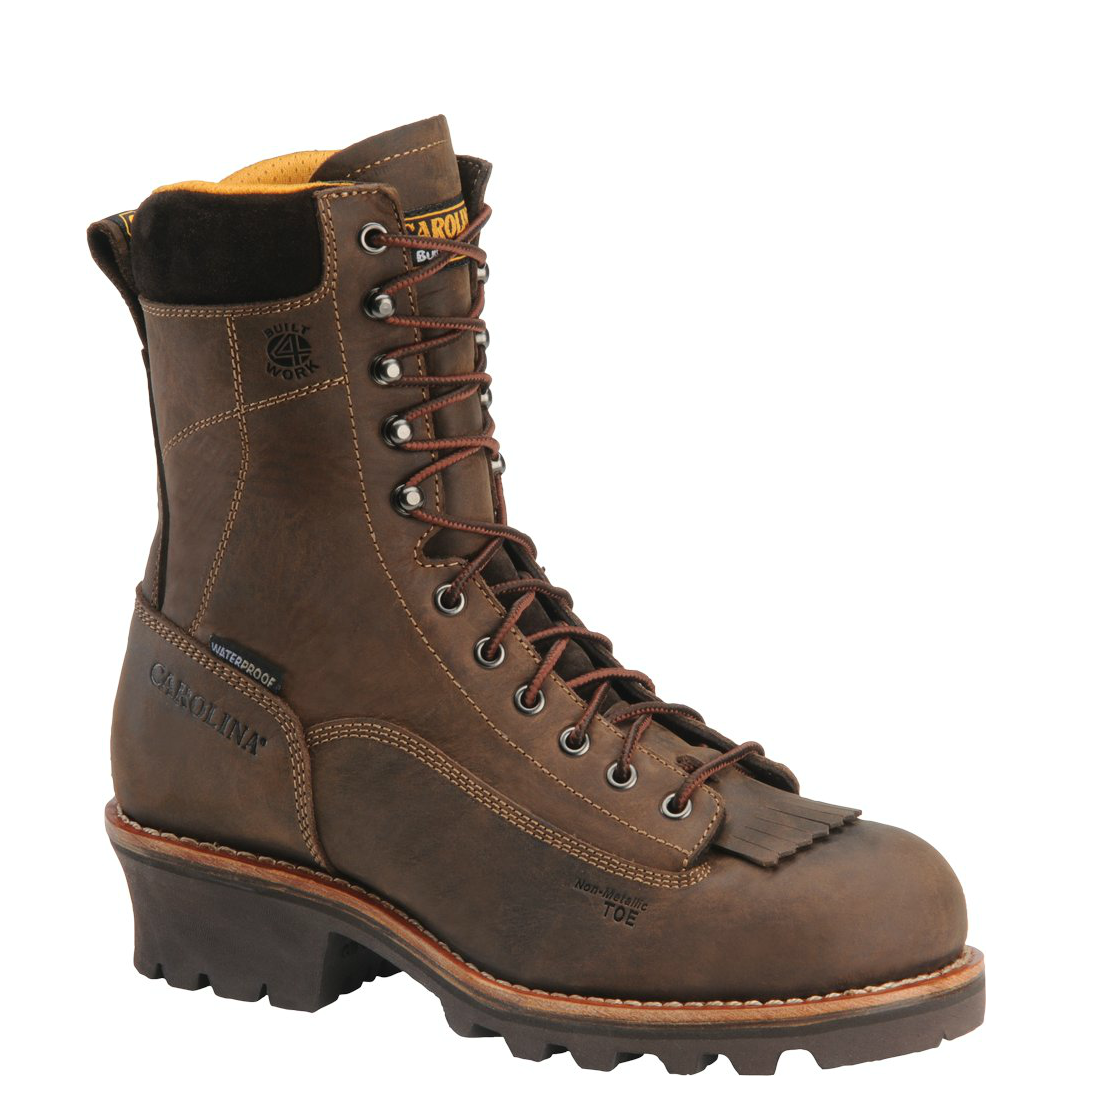 "Carolina Men's 8"" Waterproof Composite Toe Logger Boot - CA7522"